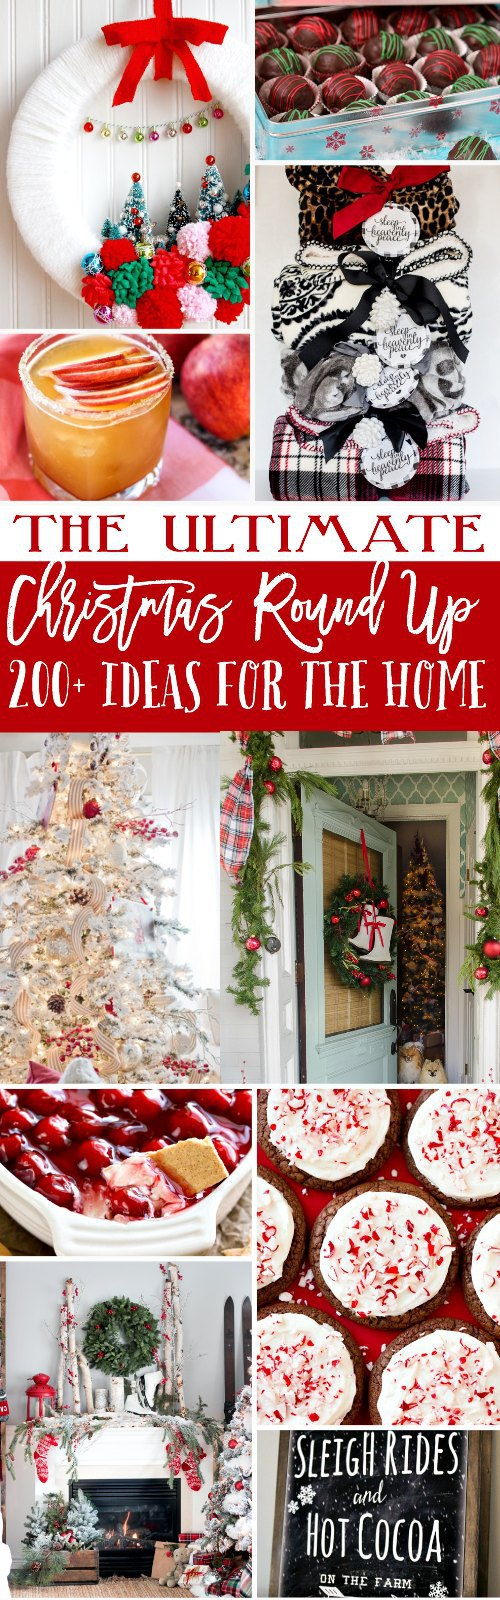 The Ultimate Christmas Round Up with 200+ Ideas for the Home, Gifts and Things to Bake!